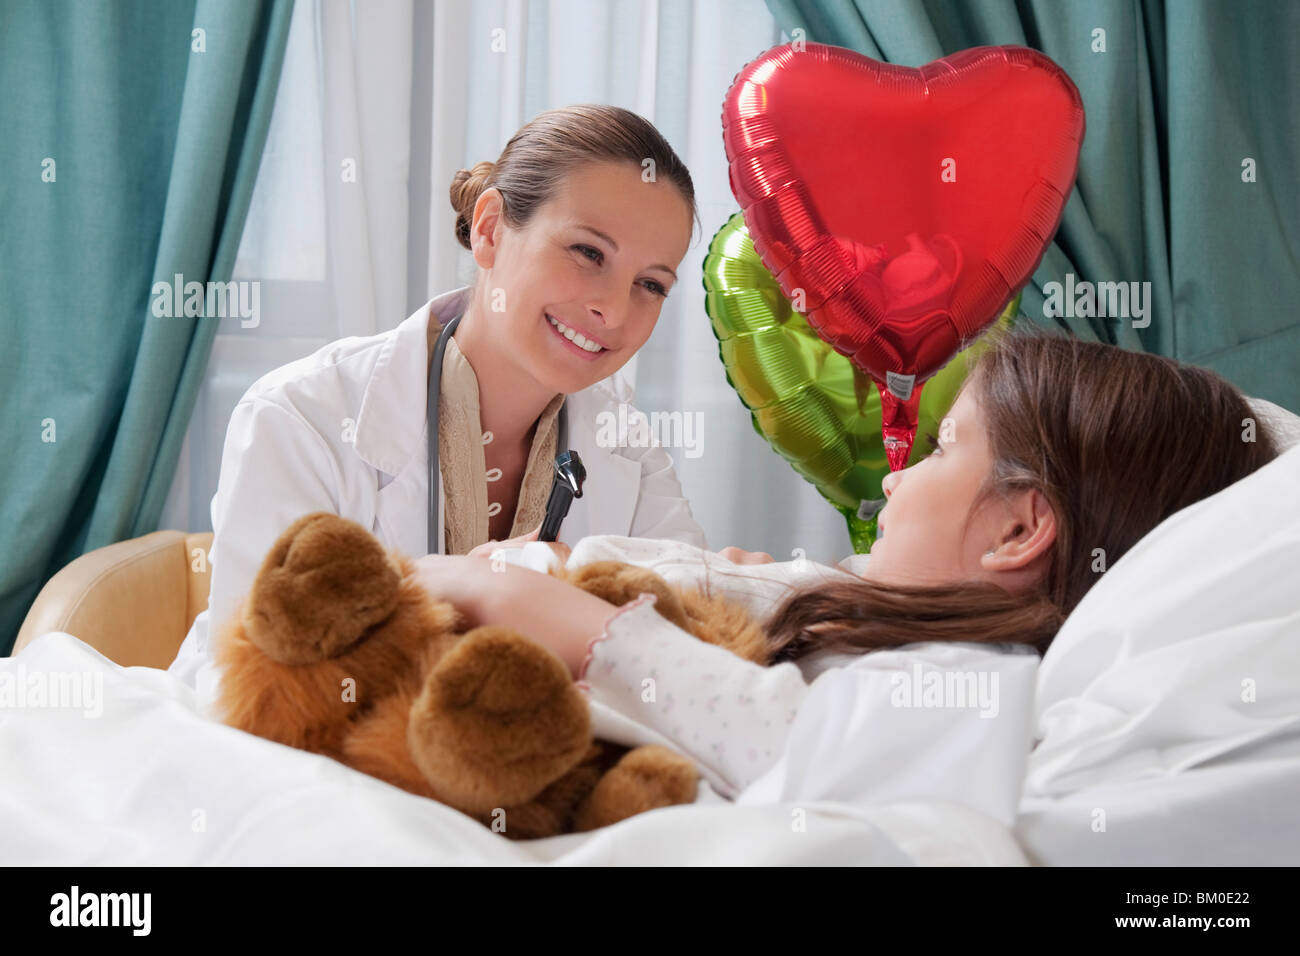 Female doctor talking with a girl in a hospital ward - Stock Image